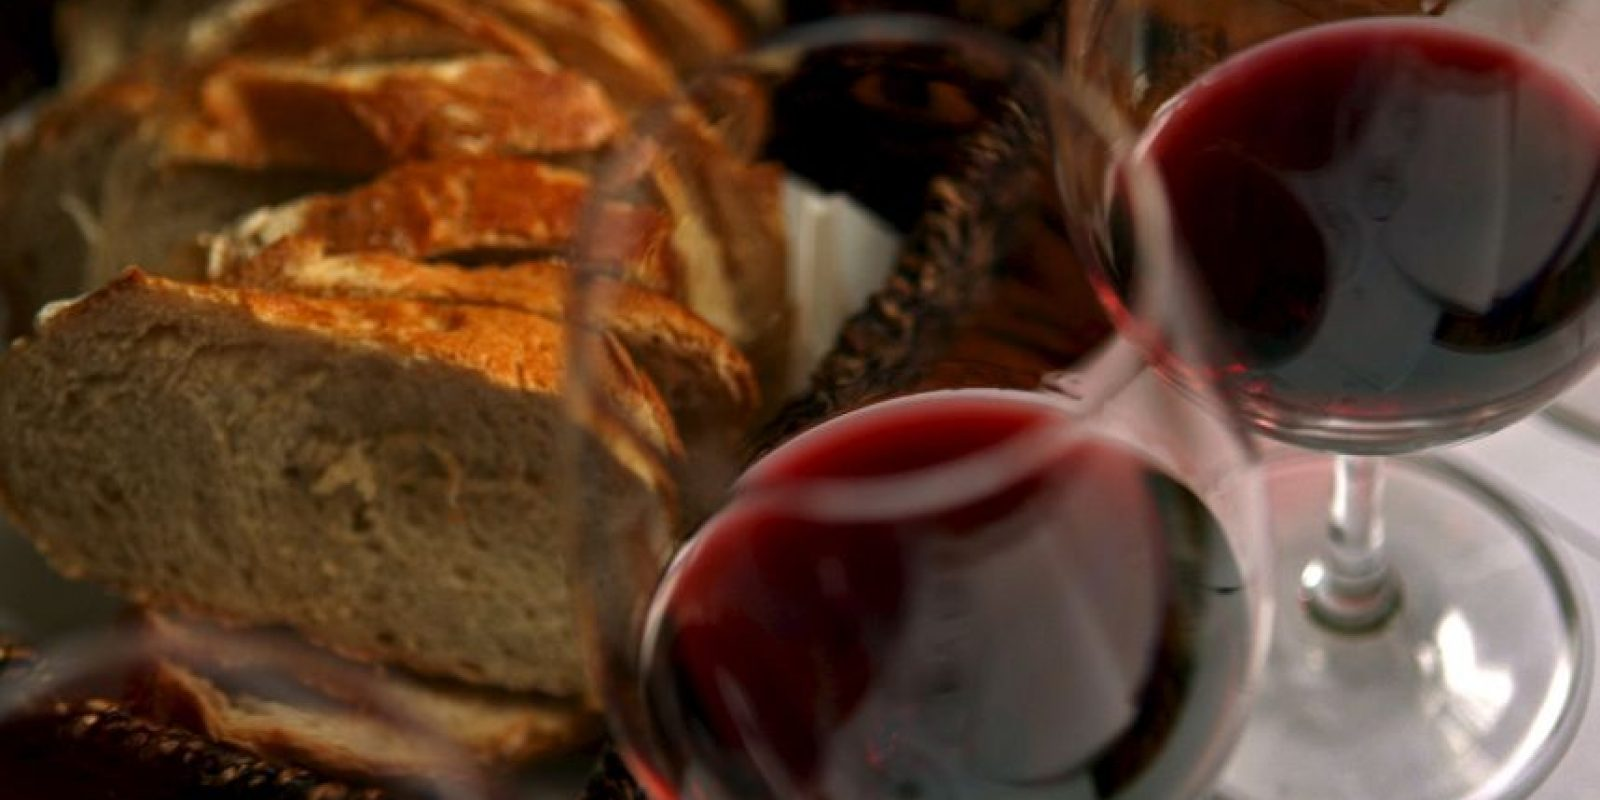 11. Vino tinto Foto: Getty Images